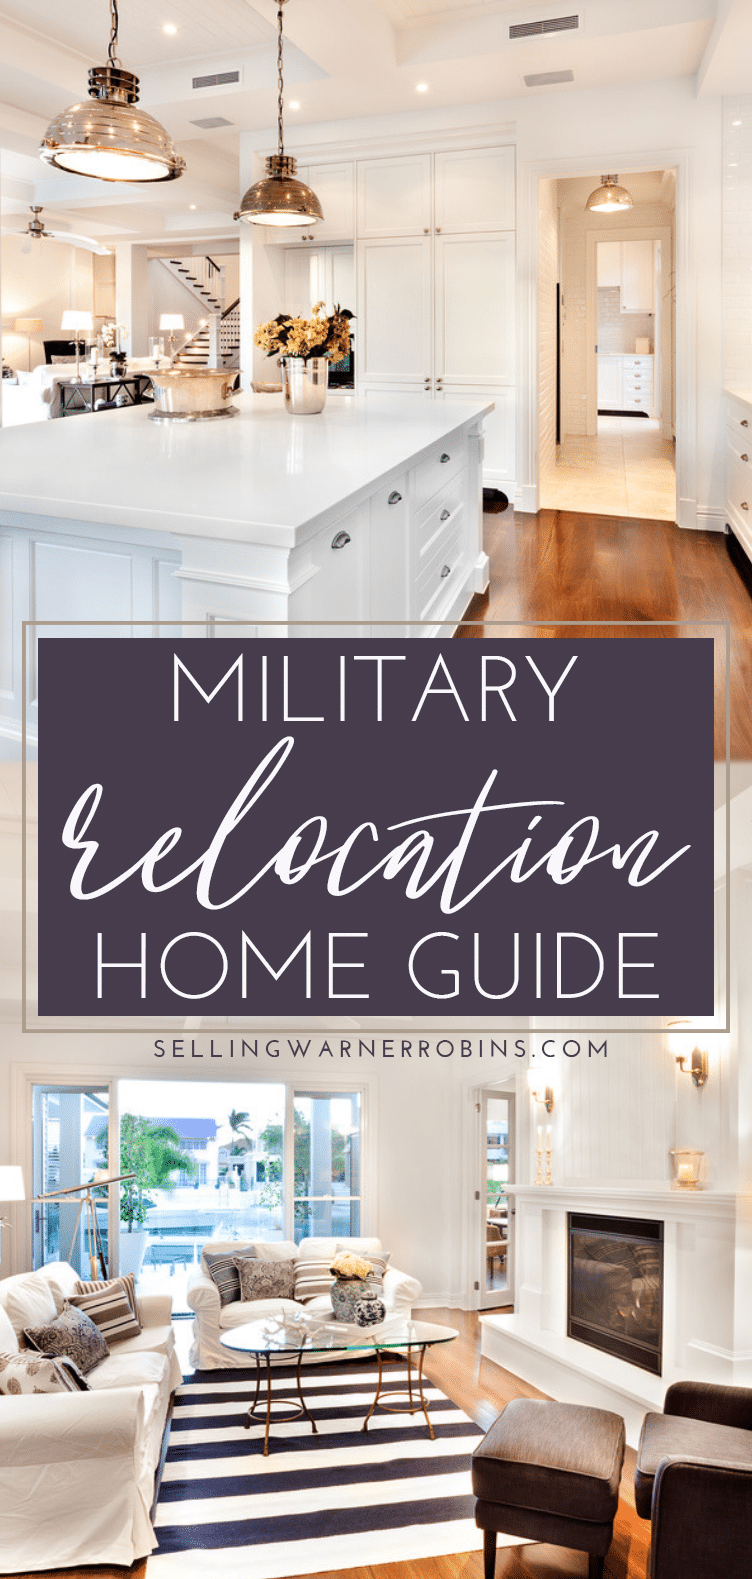 Military Relocation Home Guide